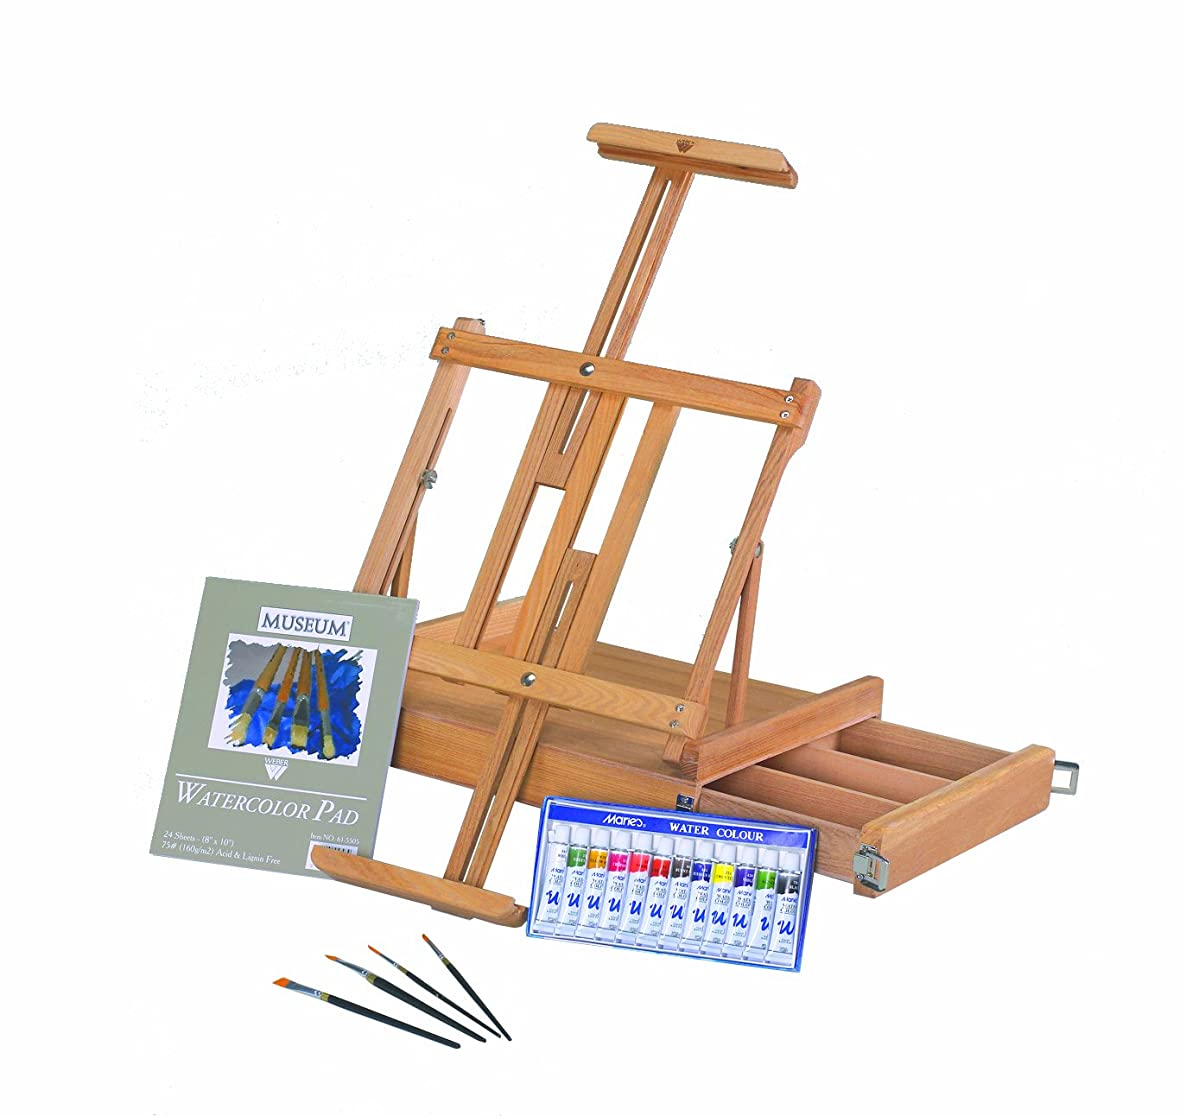 Martin Van Dyck Deluxe Studio Watercolor Painting Kit, Includes 12 Watercolor Paints, 4 Brushes and Pad, 1 Each (63-AB40013)